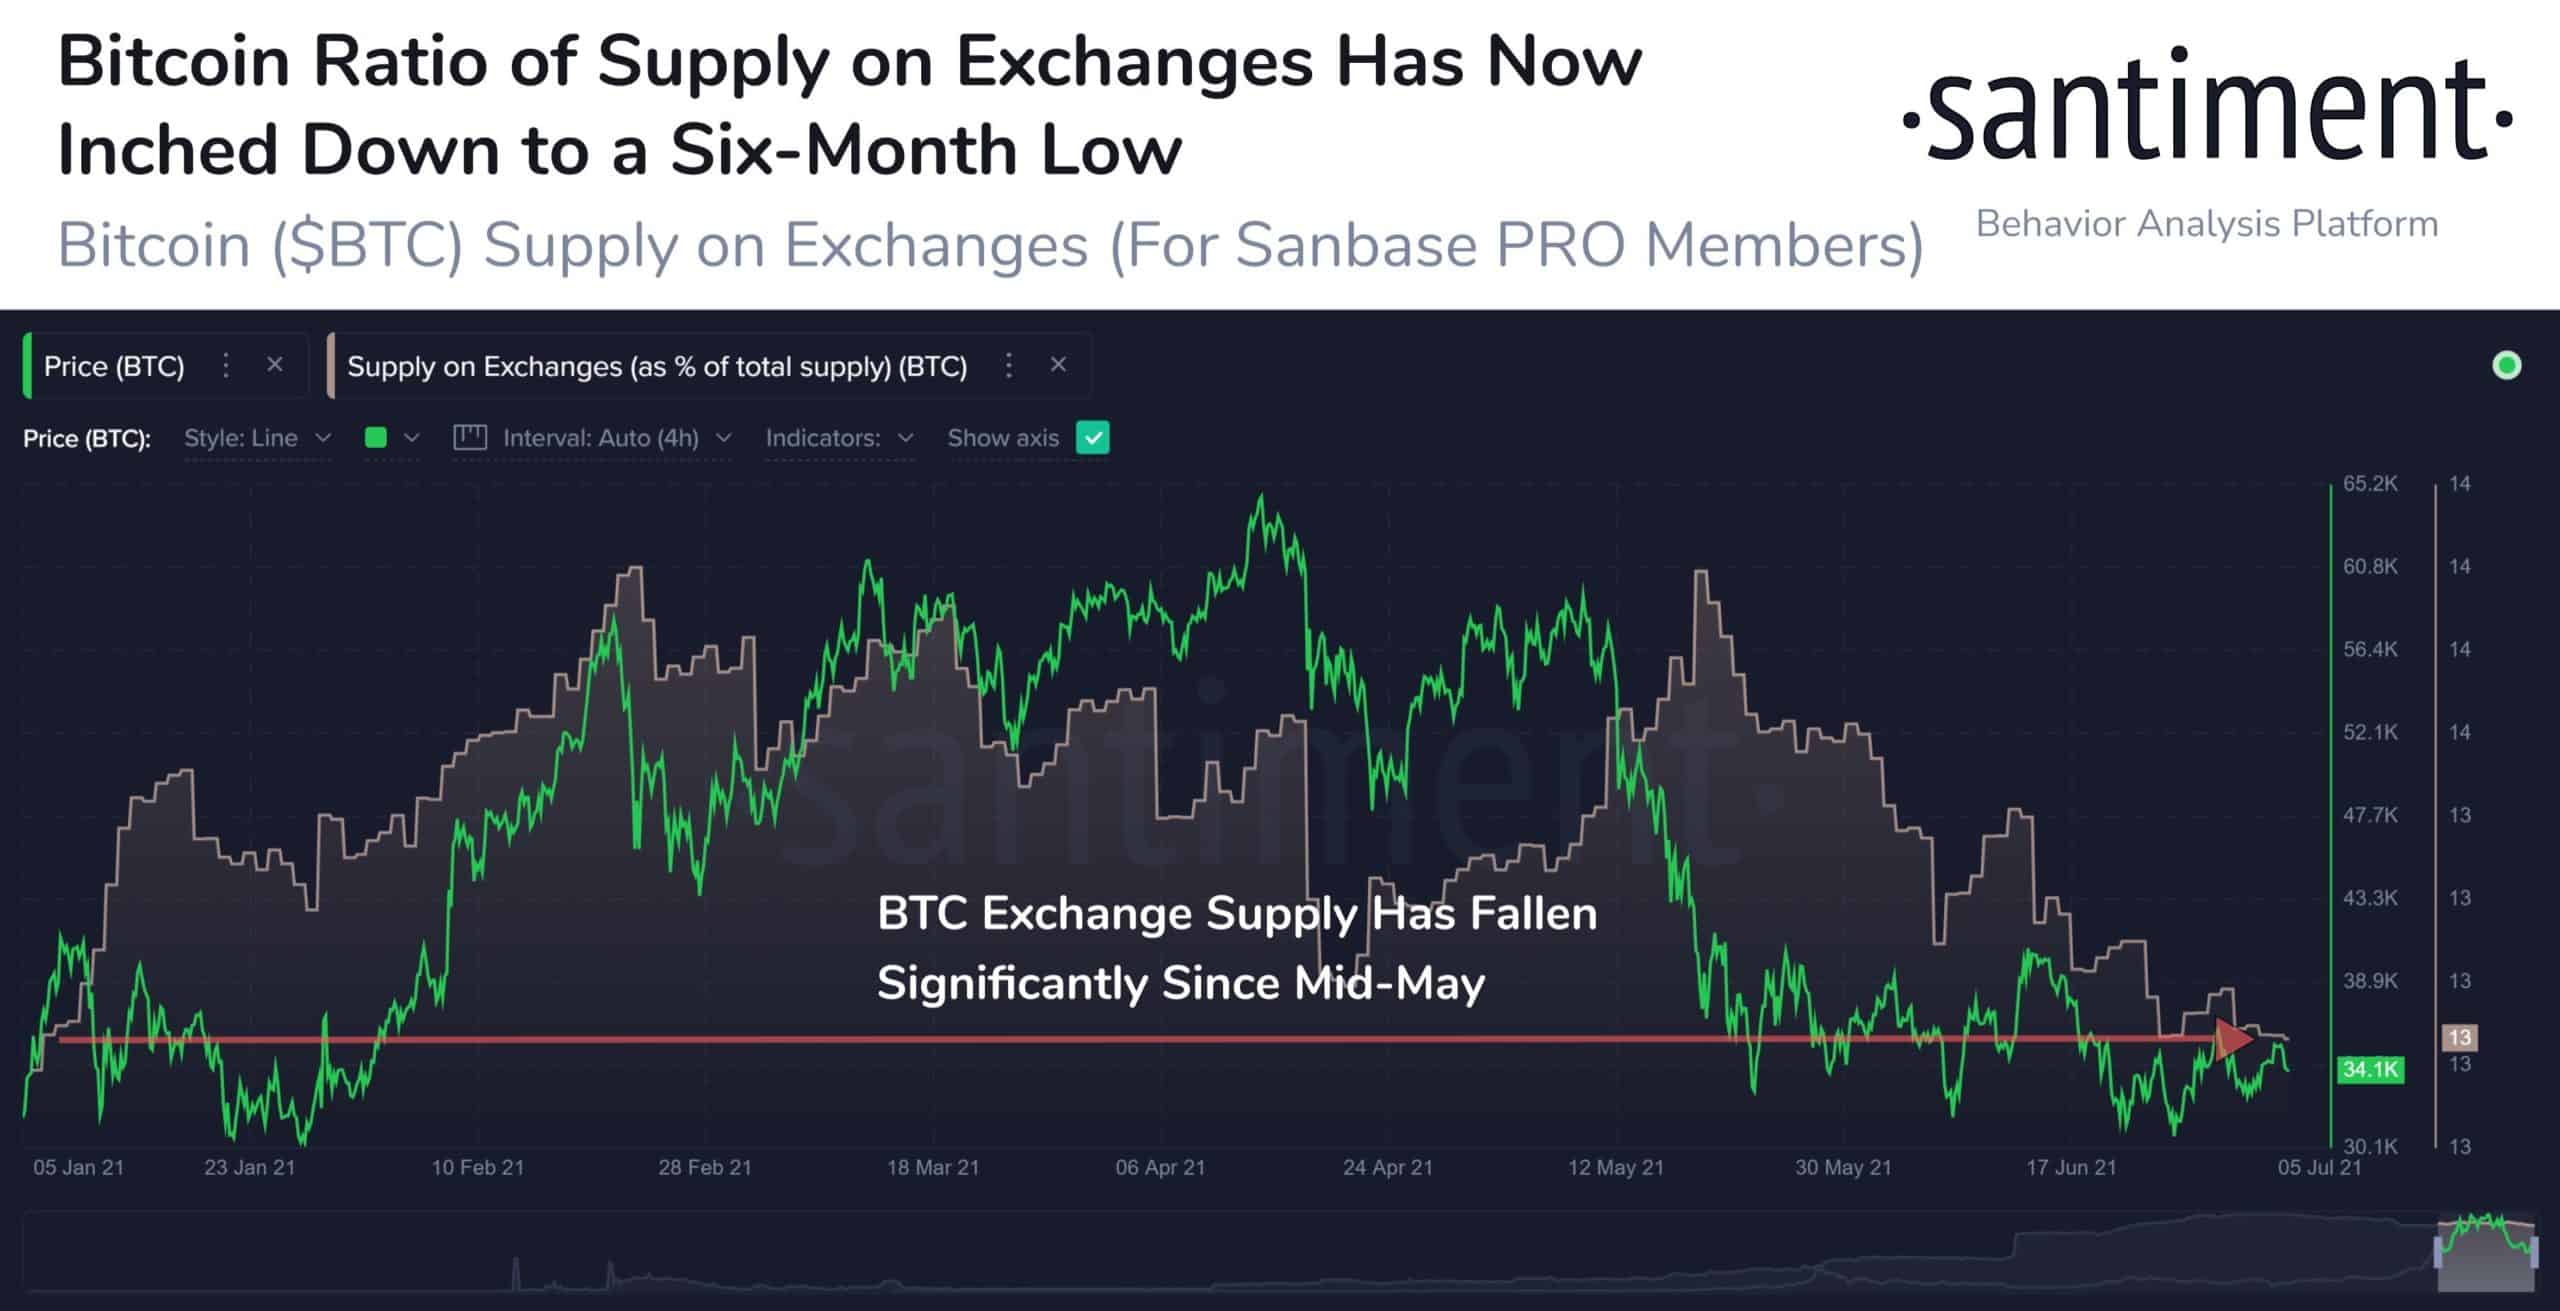 Bitcoin Stored on Exchanges. Source: Santiment